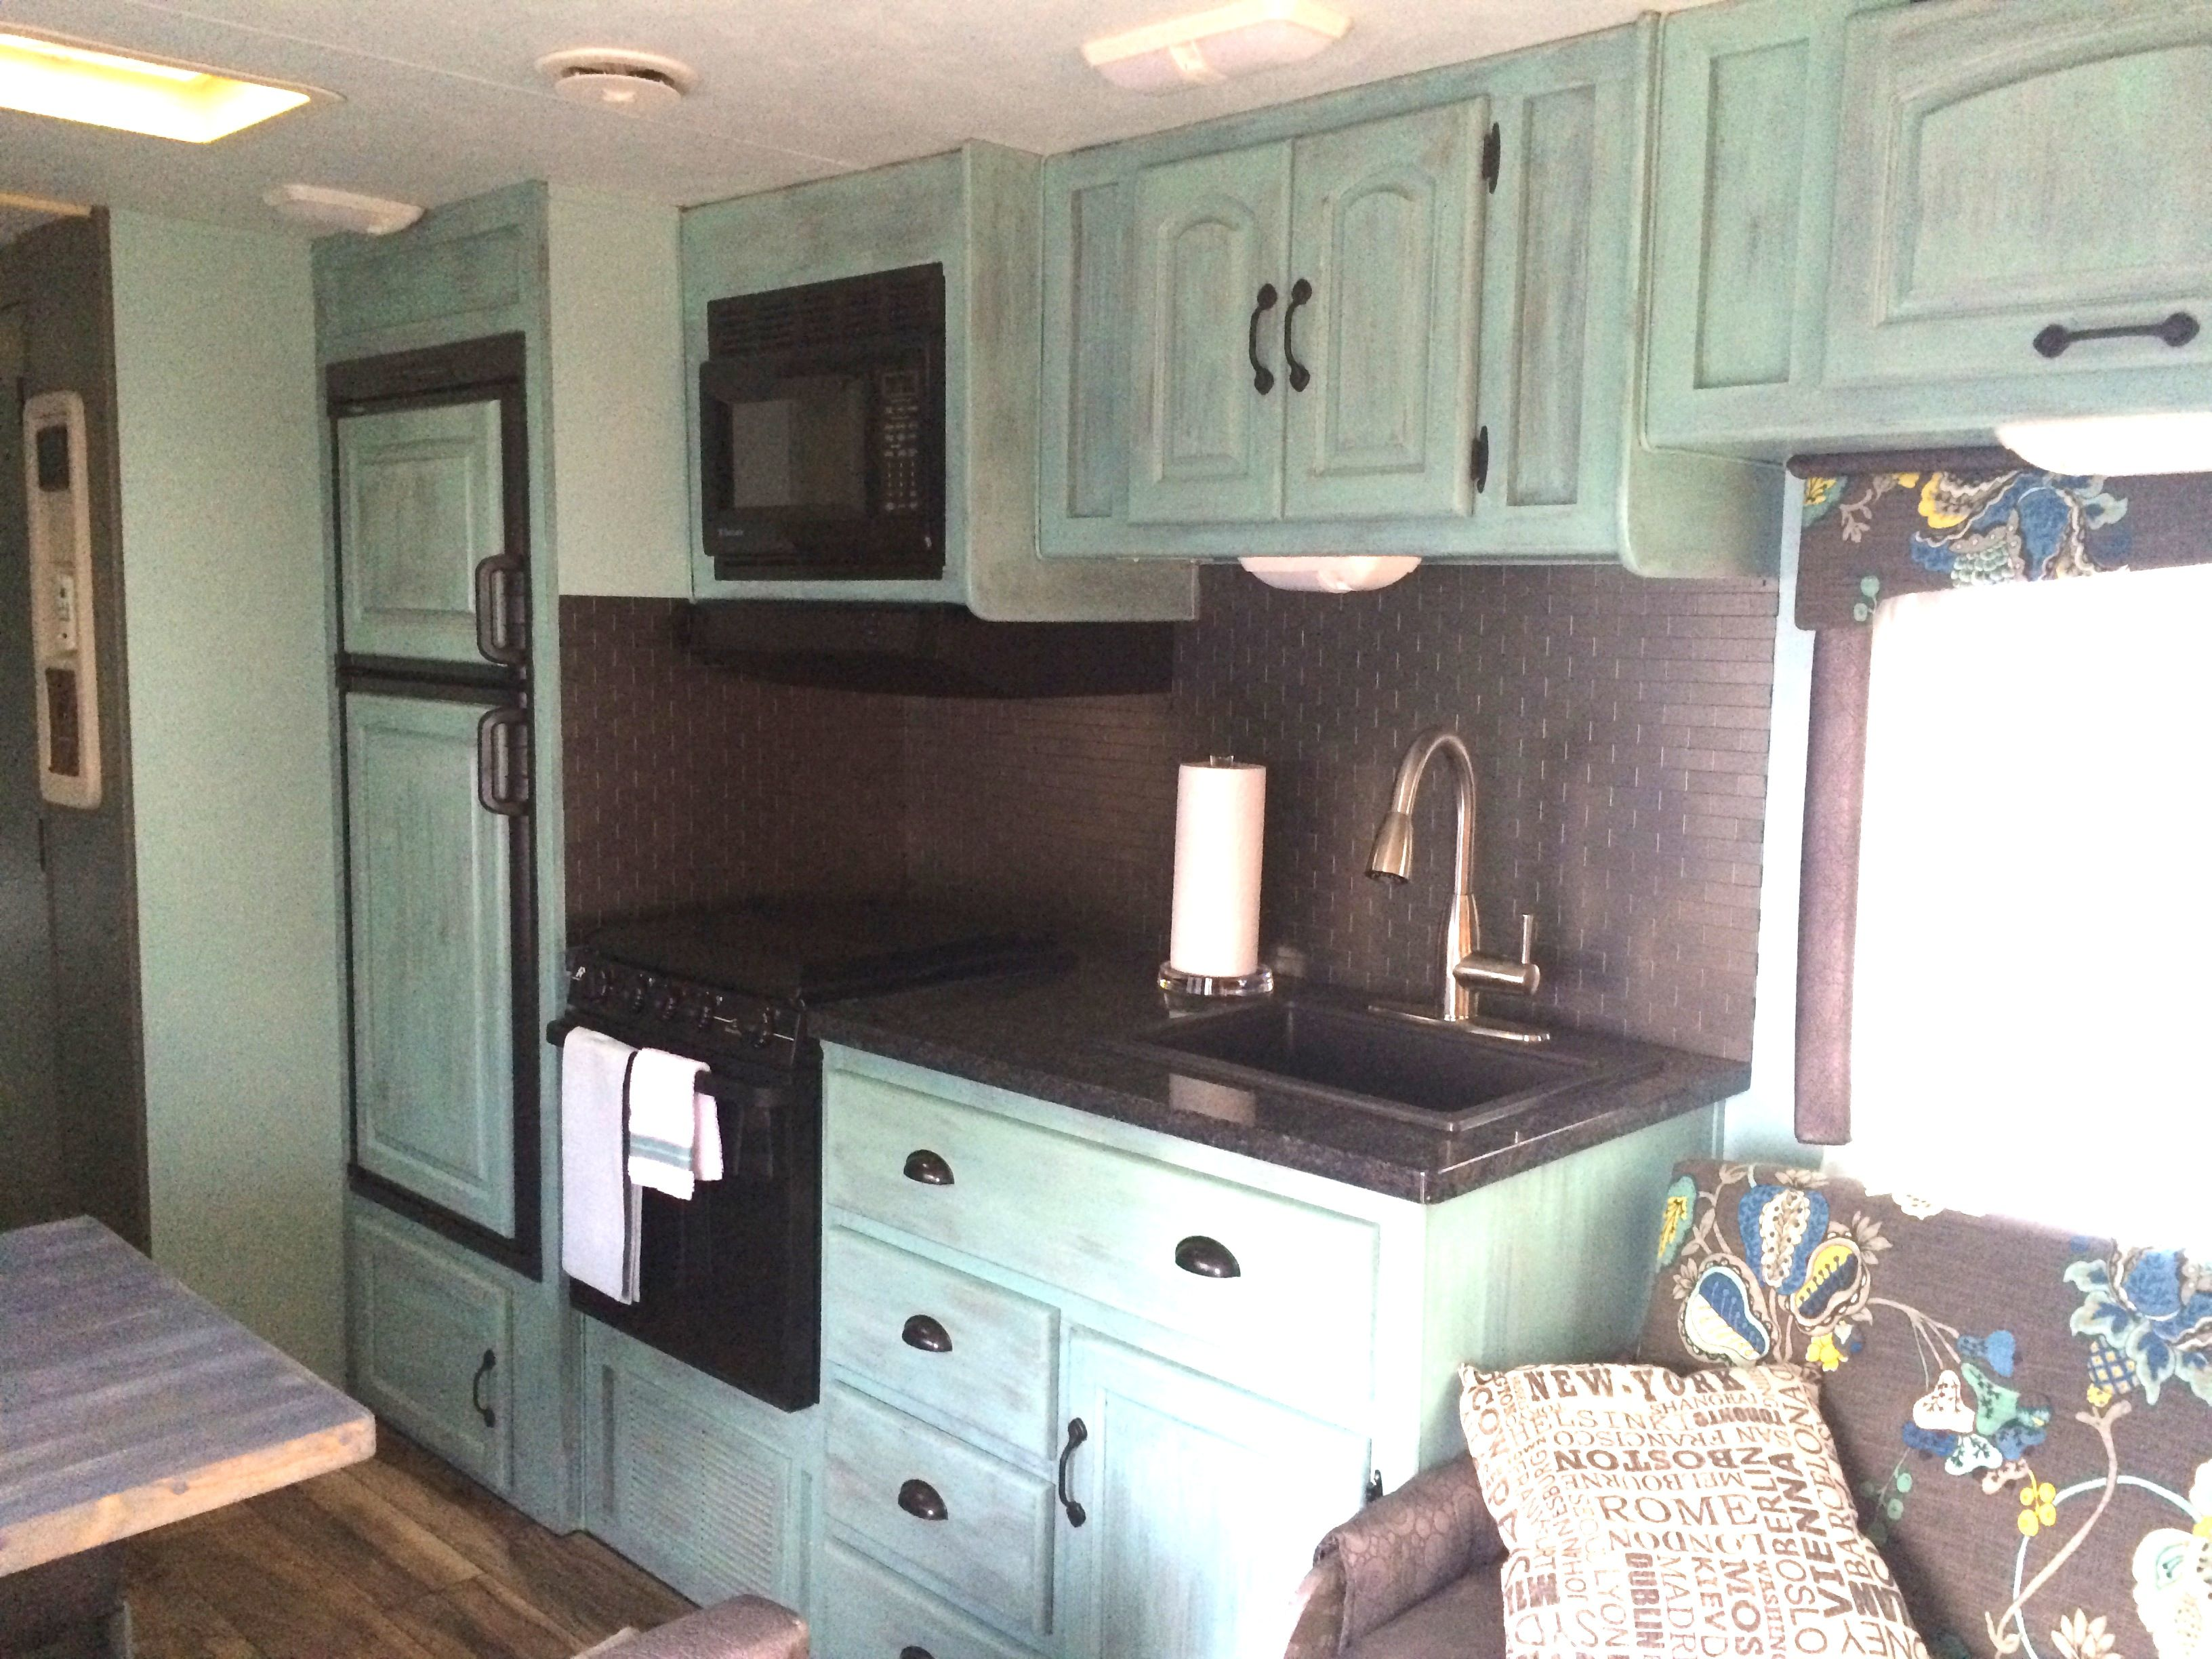 Attirant [I Like The Cabinet Hardware For My Camper Reno] RV Bathroom Remodel Before  After | WOW! What A Beautiful RV Remodel!